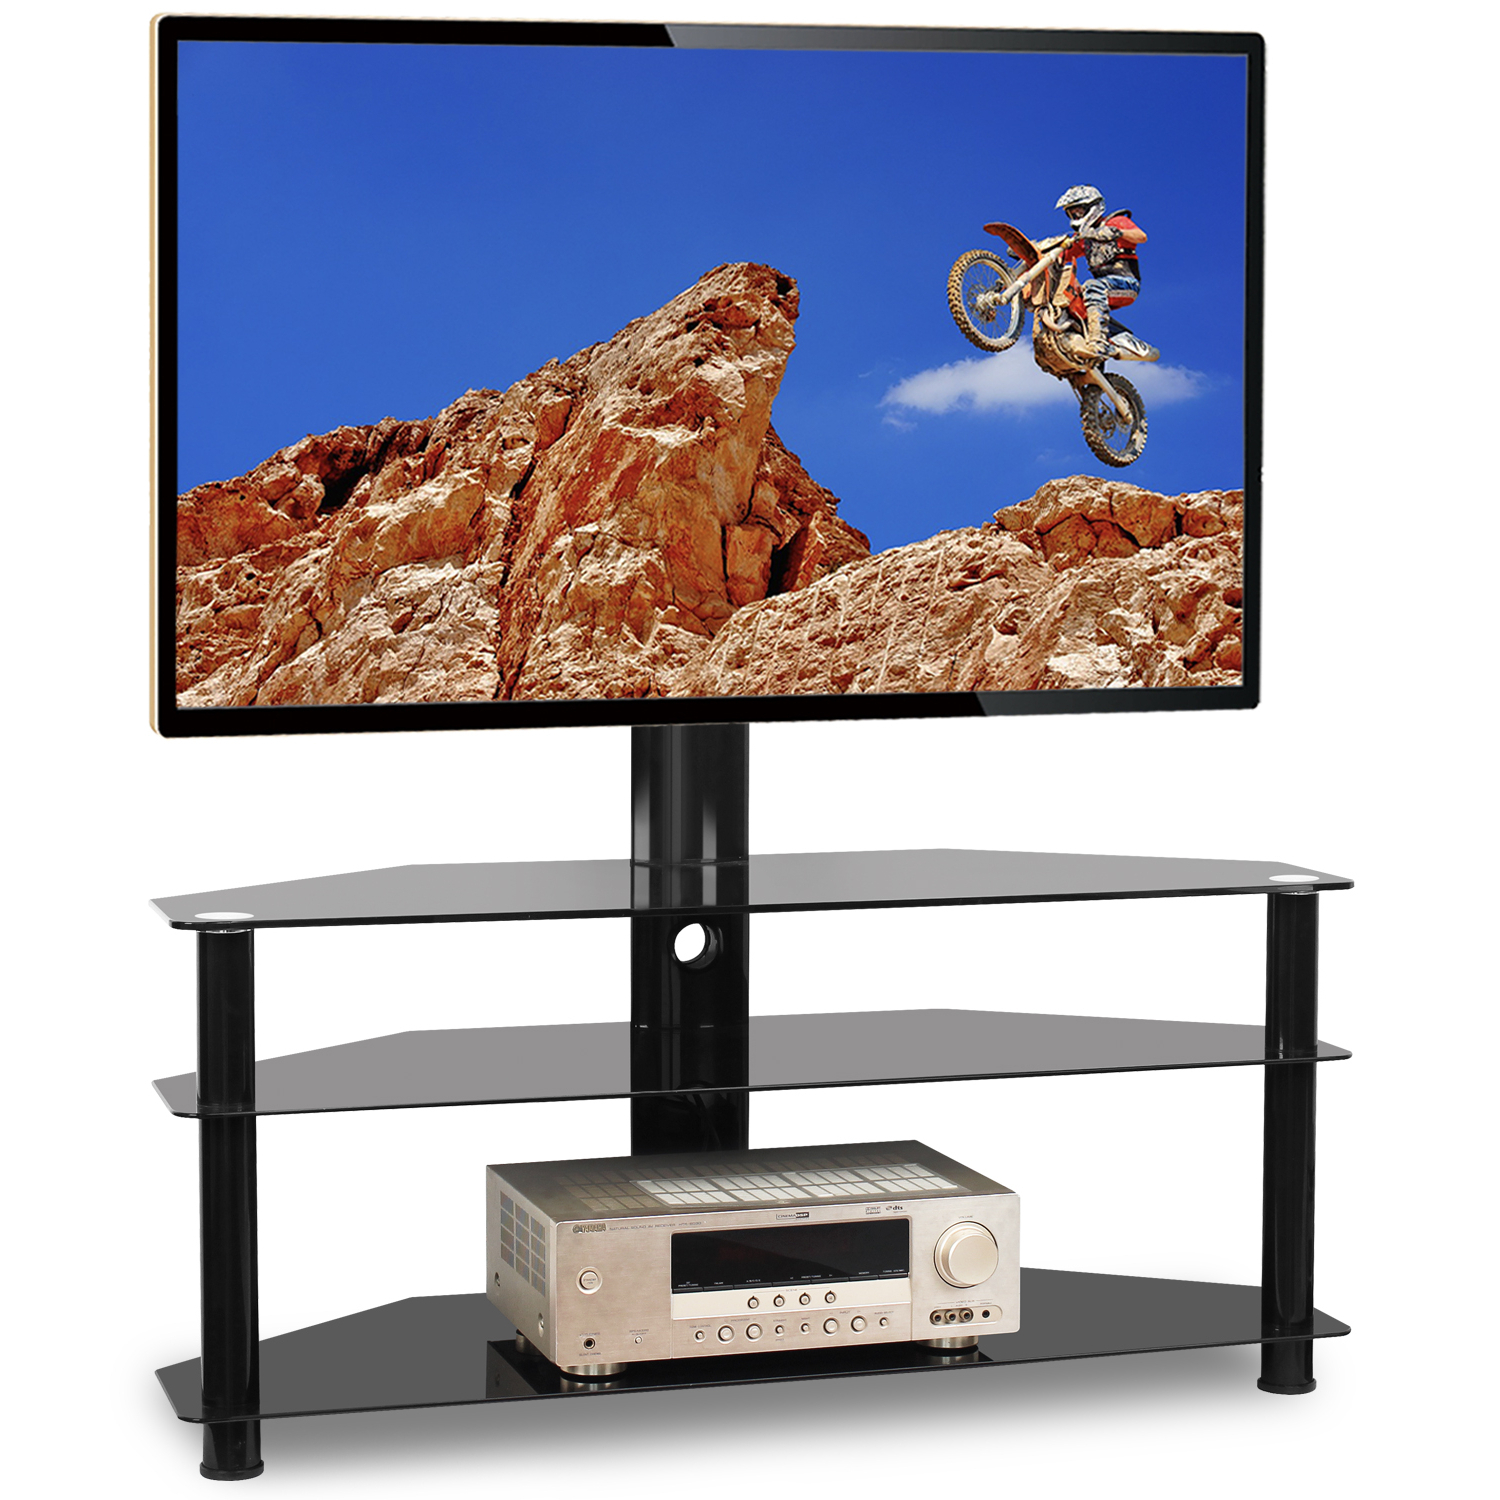 """Tracy Tv Stands For Tvs Up To 50"""" Inside Most Recent 5rcom Floor Tv Stand With Swivel Mount For Flat Curved (View 21 of 25)"""